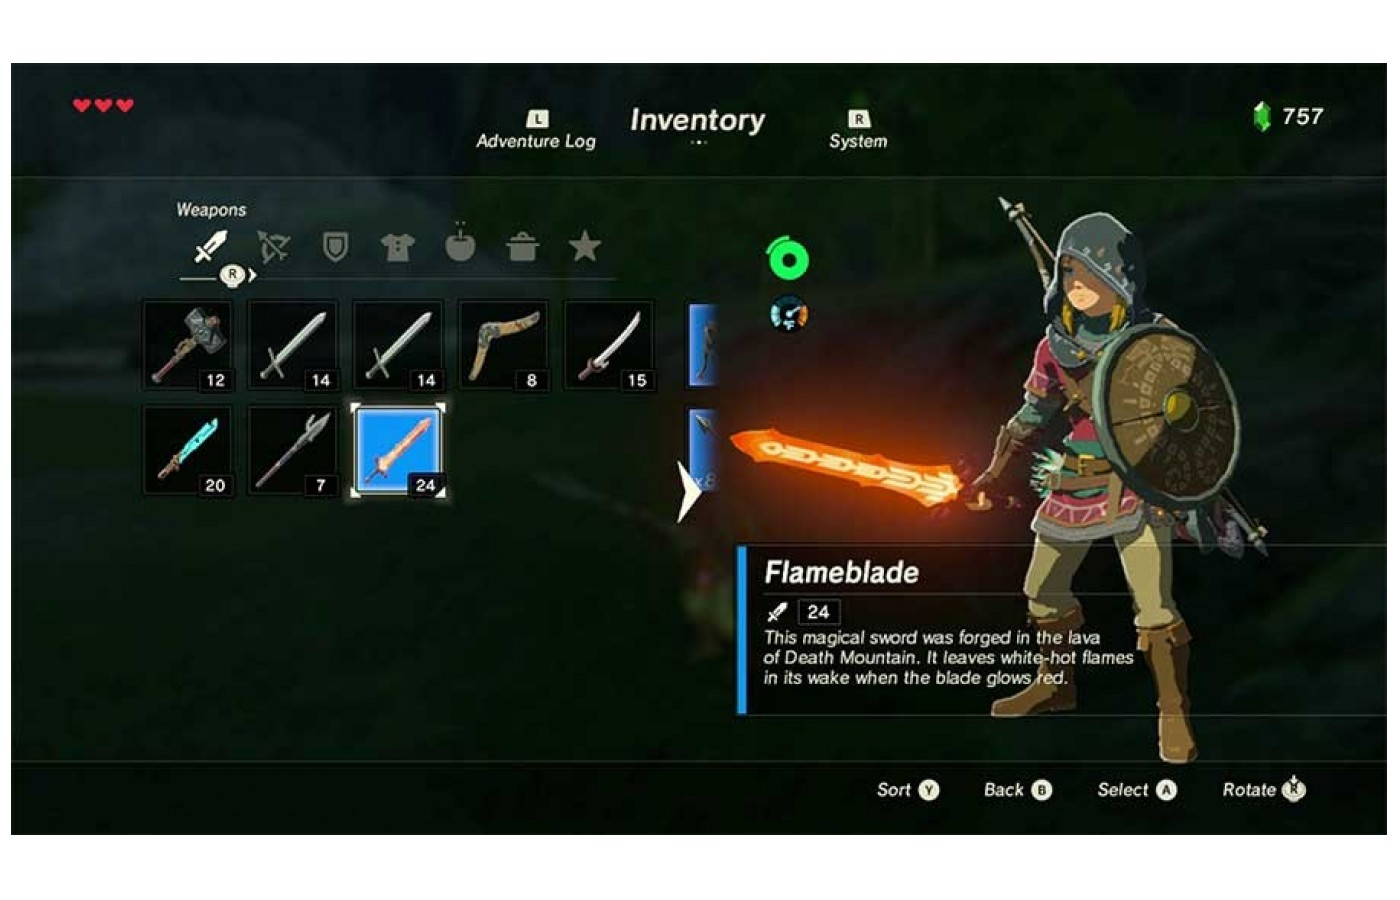 Weapons can break in this game- but the Mastersword can give you at least one that self-repairs.